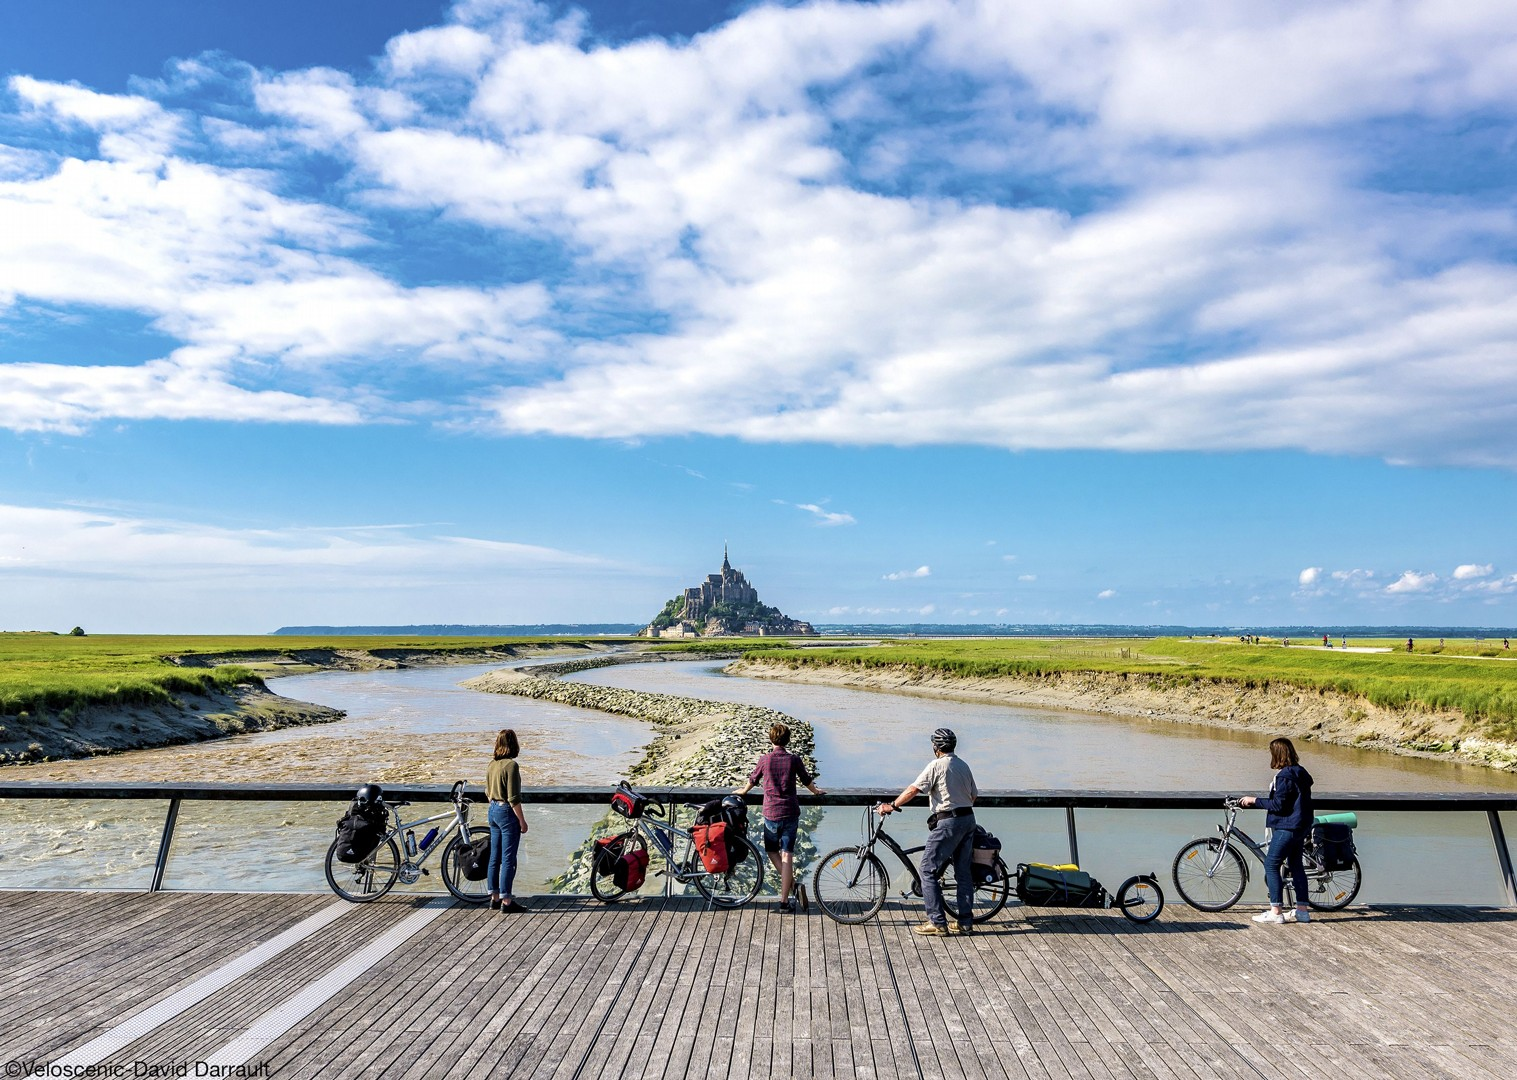 mont-saint-michel-versailles-cycling-holiday-fun-sights-leisure.jpg - NEW! France - Versailles to Mont Saint Michel - Self-Guided Leisure Cycling Holiday - Leisure Cycling